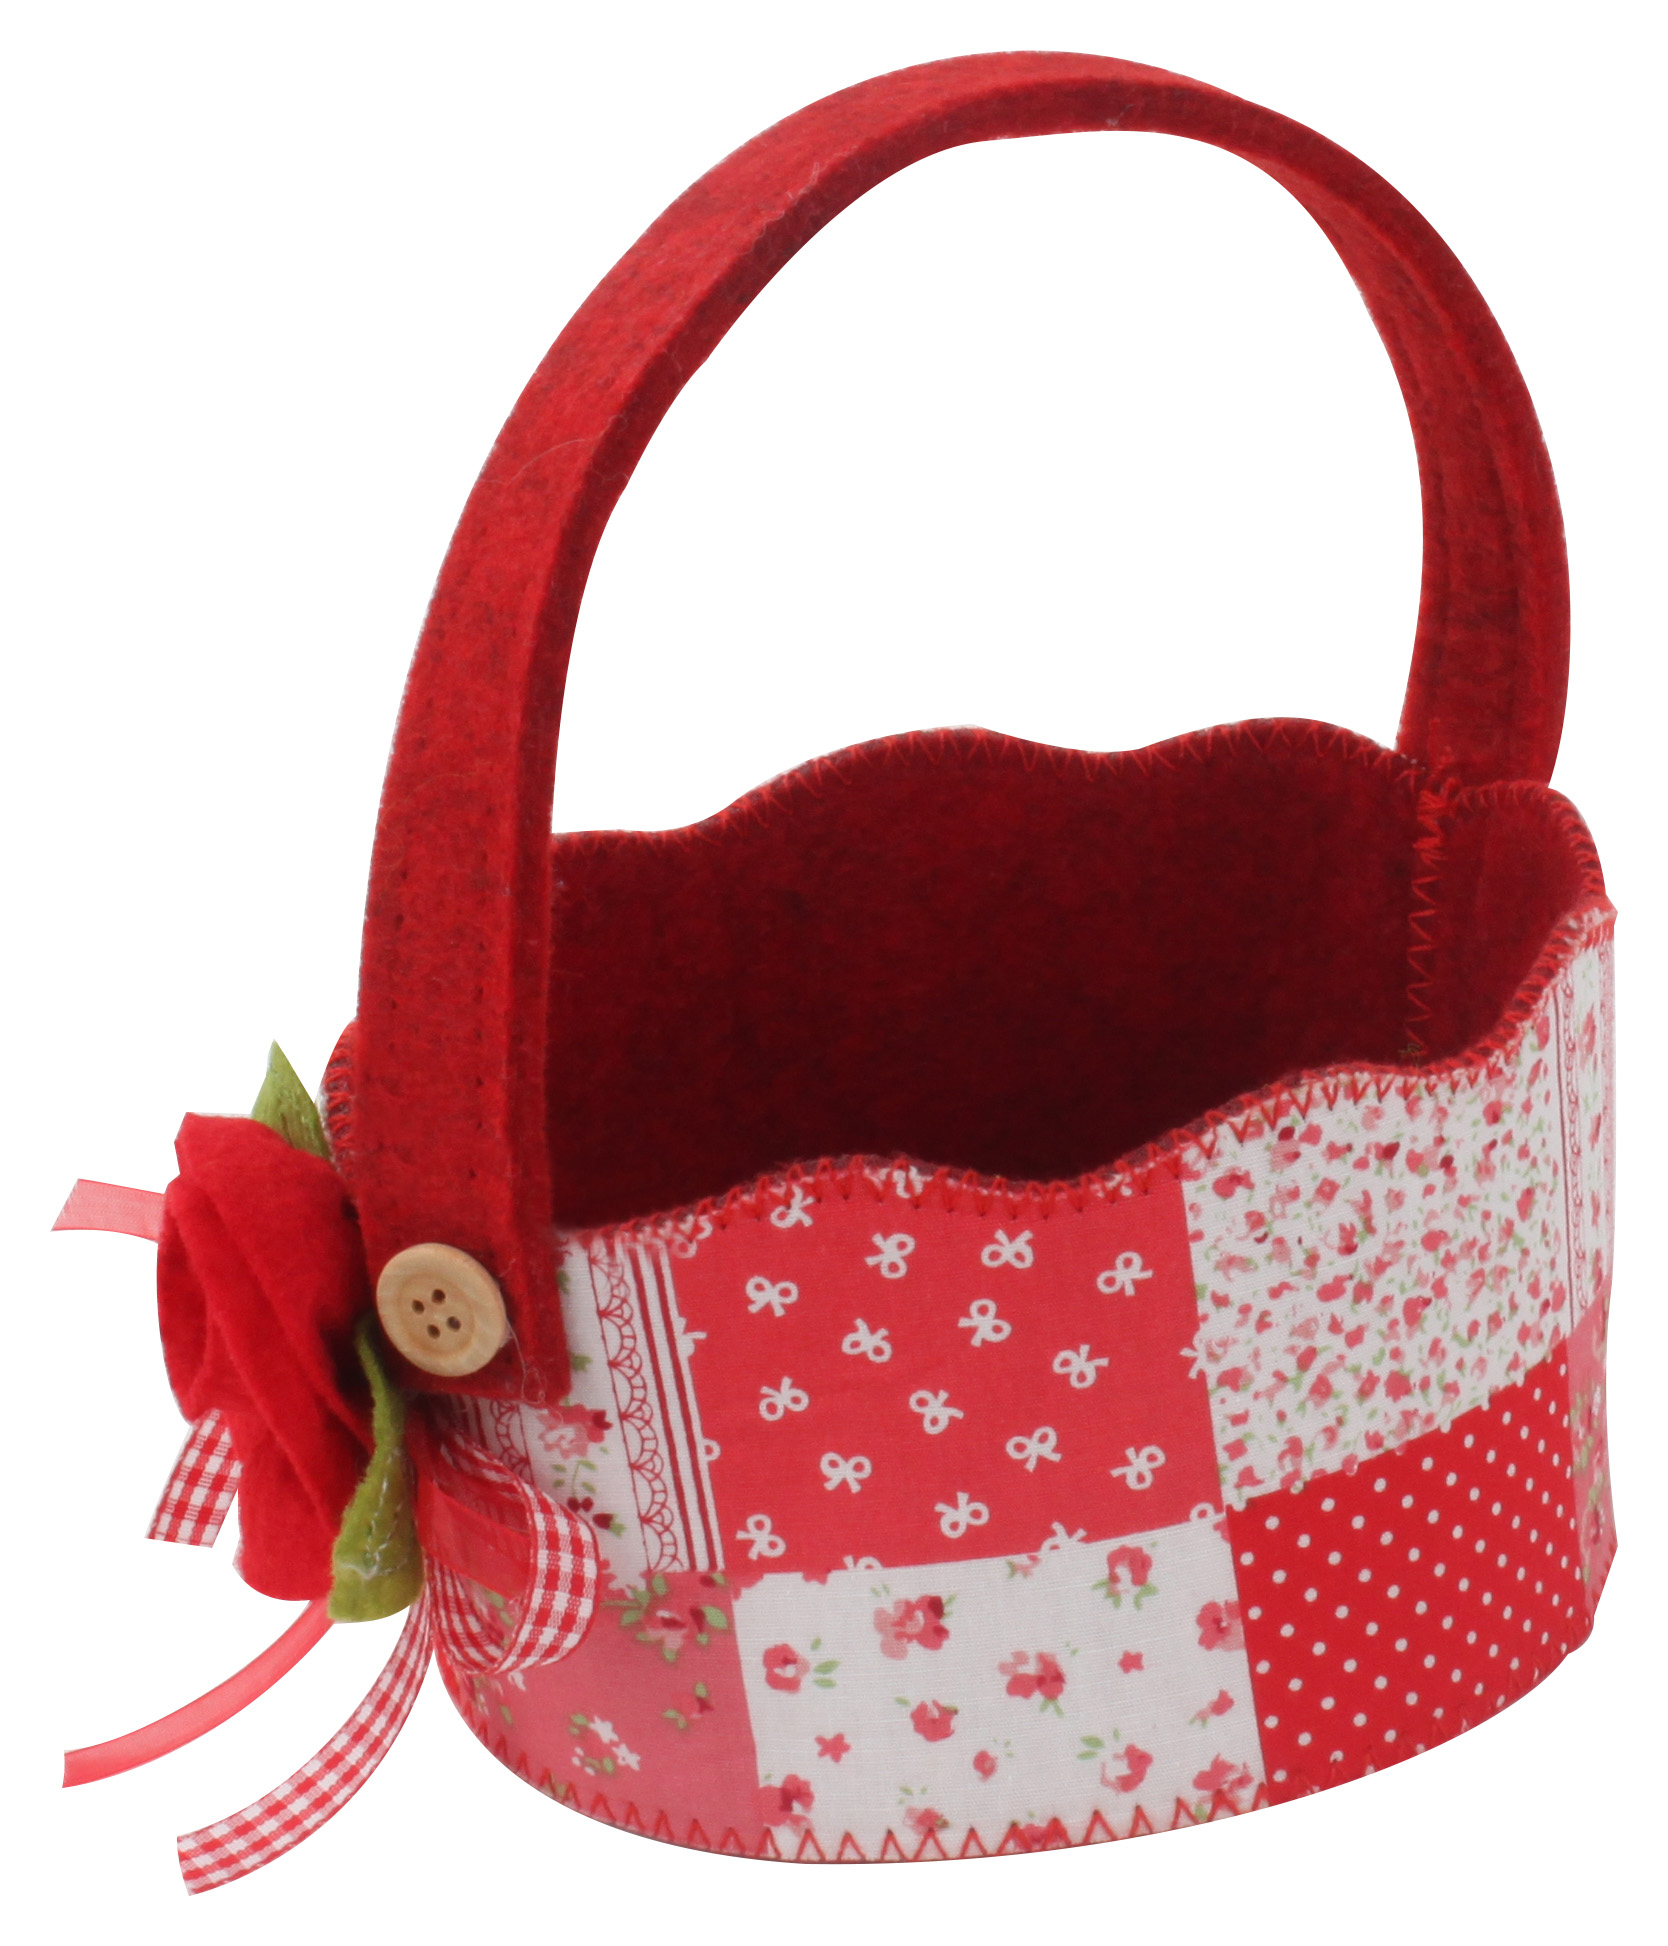 €4 FLOWER FELT BASKET IN RED COLOR 13,5Χ8(18)